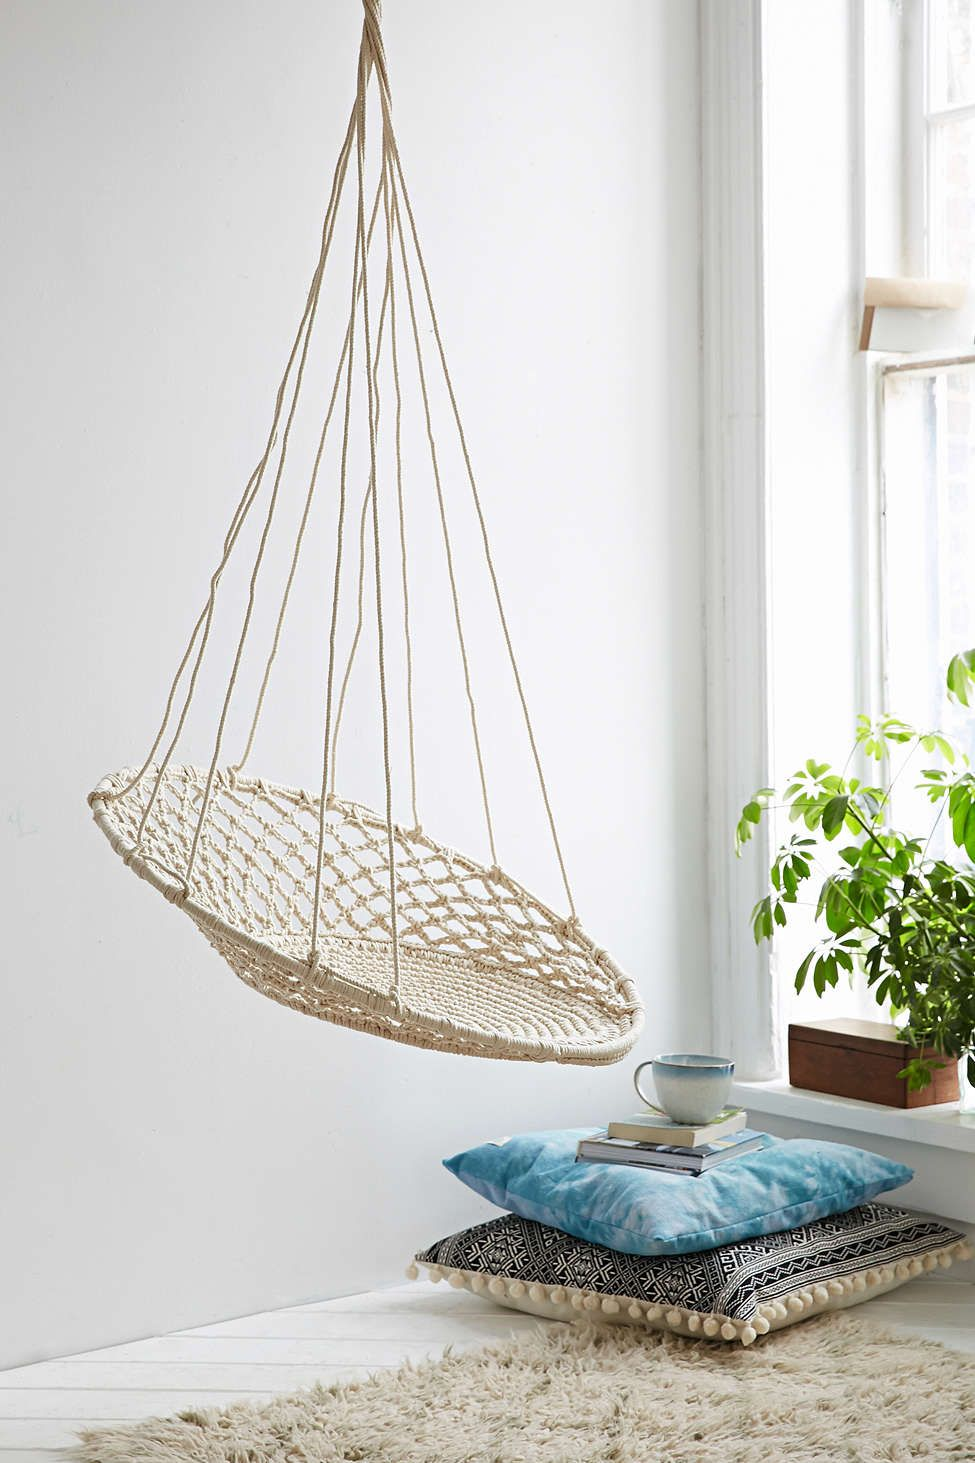 The 20 Coolest Home Pieces At Urban Outfitters Right Now Castle